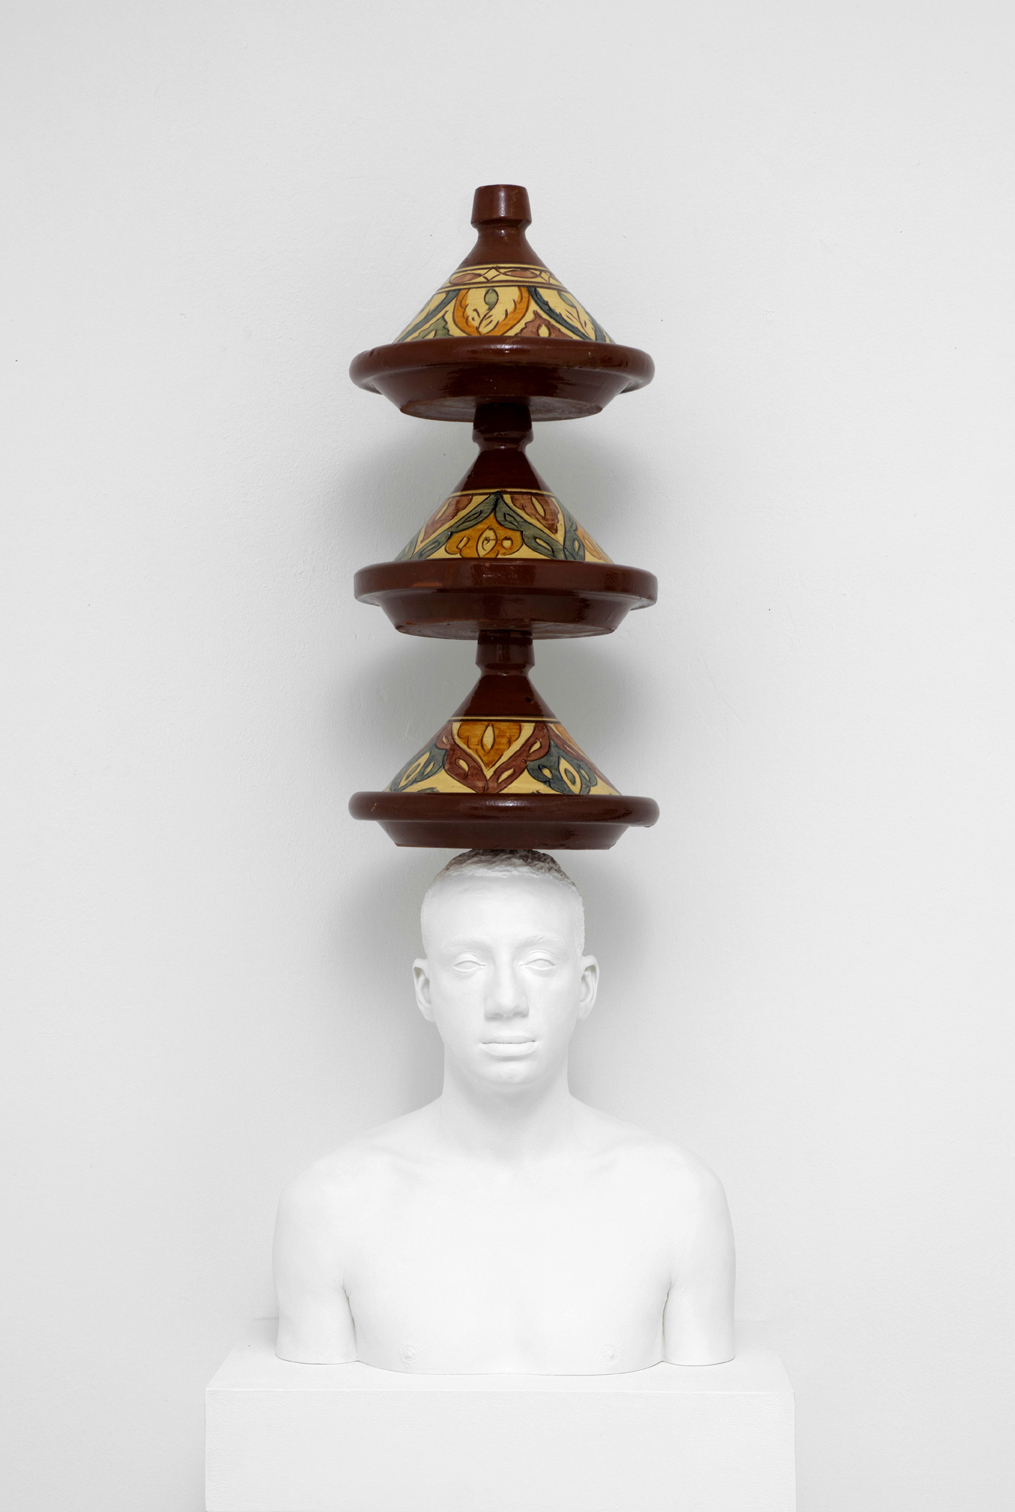 Mehdi-Georges Lahlou, Eqilibre Tajines, 2012- Courtesy the artist and Rabouan Moussion Gallery Paris